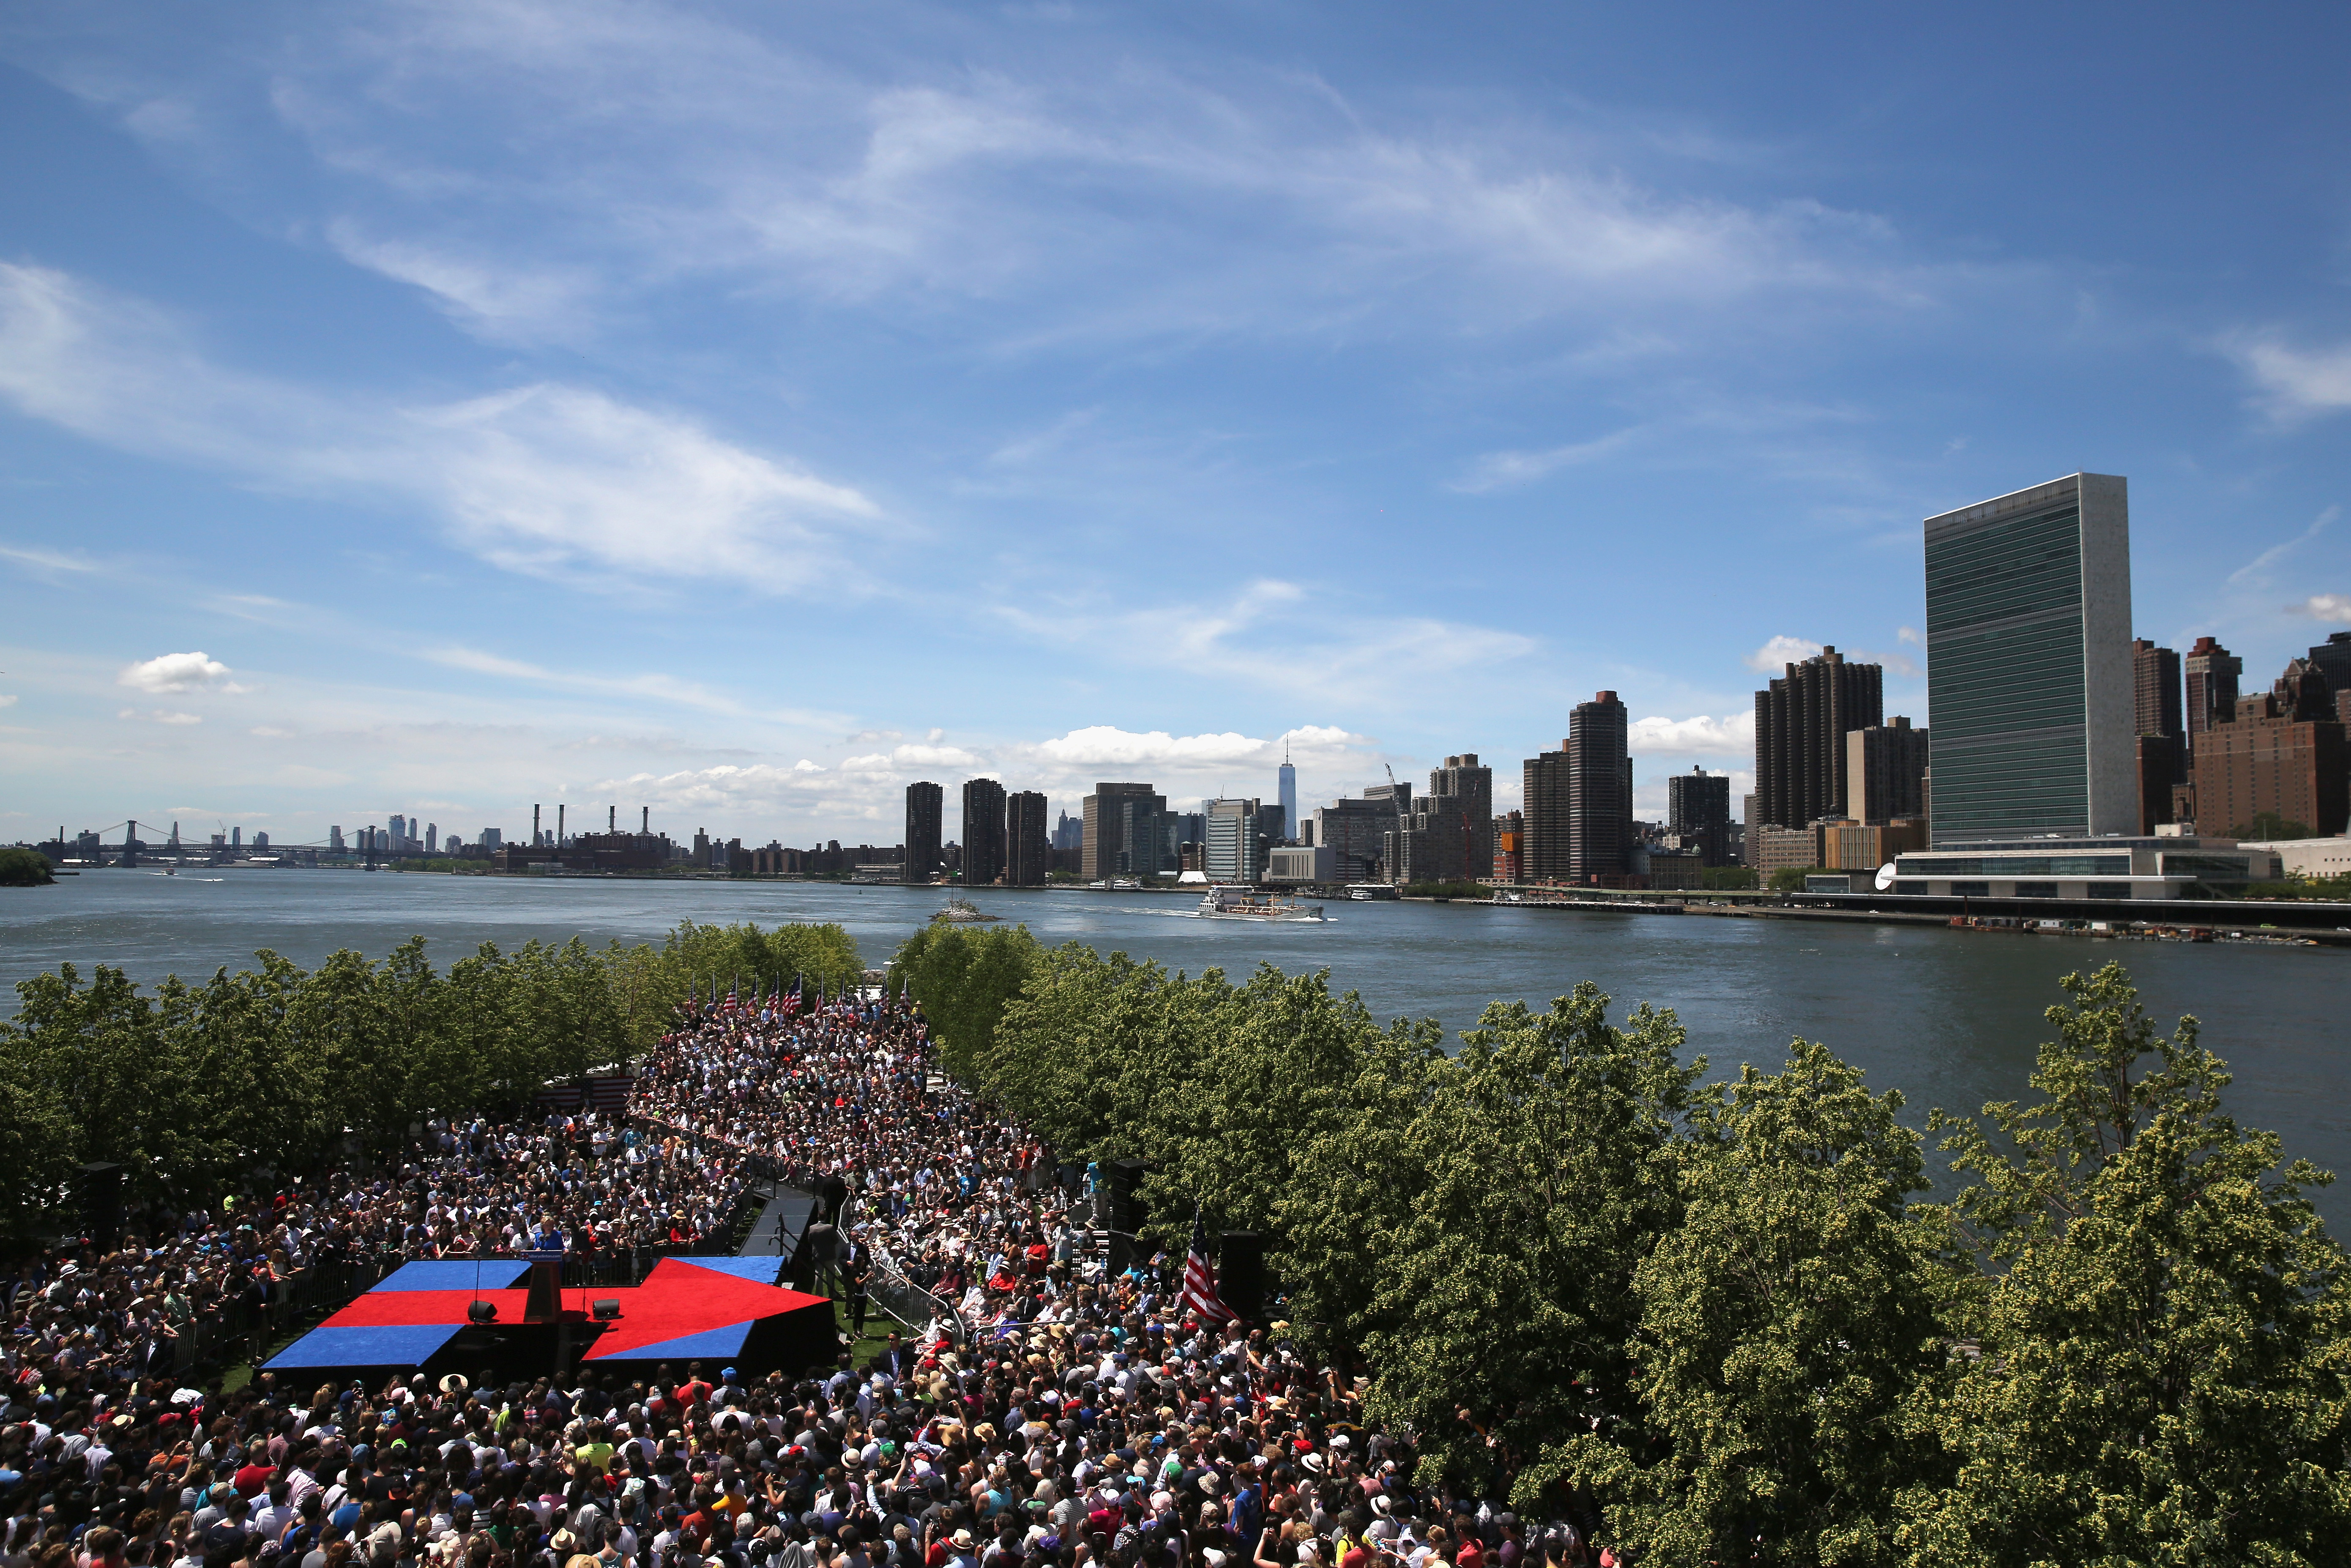 Democratic Presidential candidate Hillary Clinton speaks to supporters at her official campaign launch rally on June 13, 2015 at Roosevelt Island.